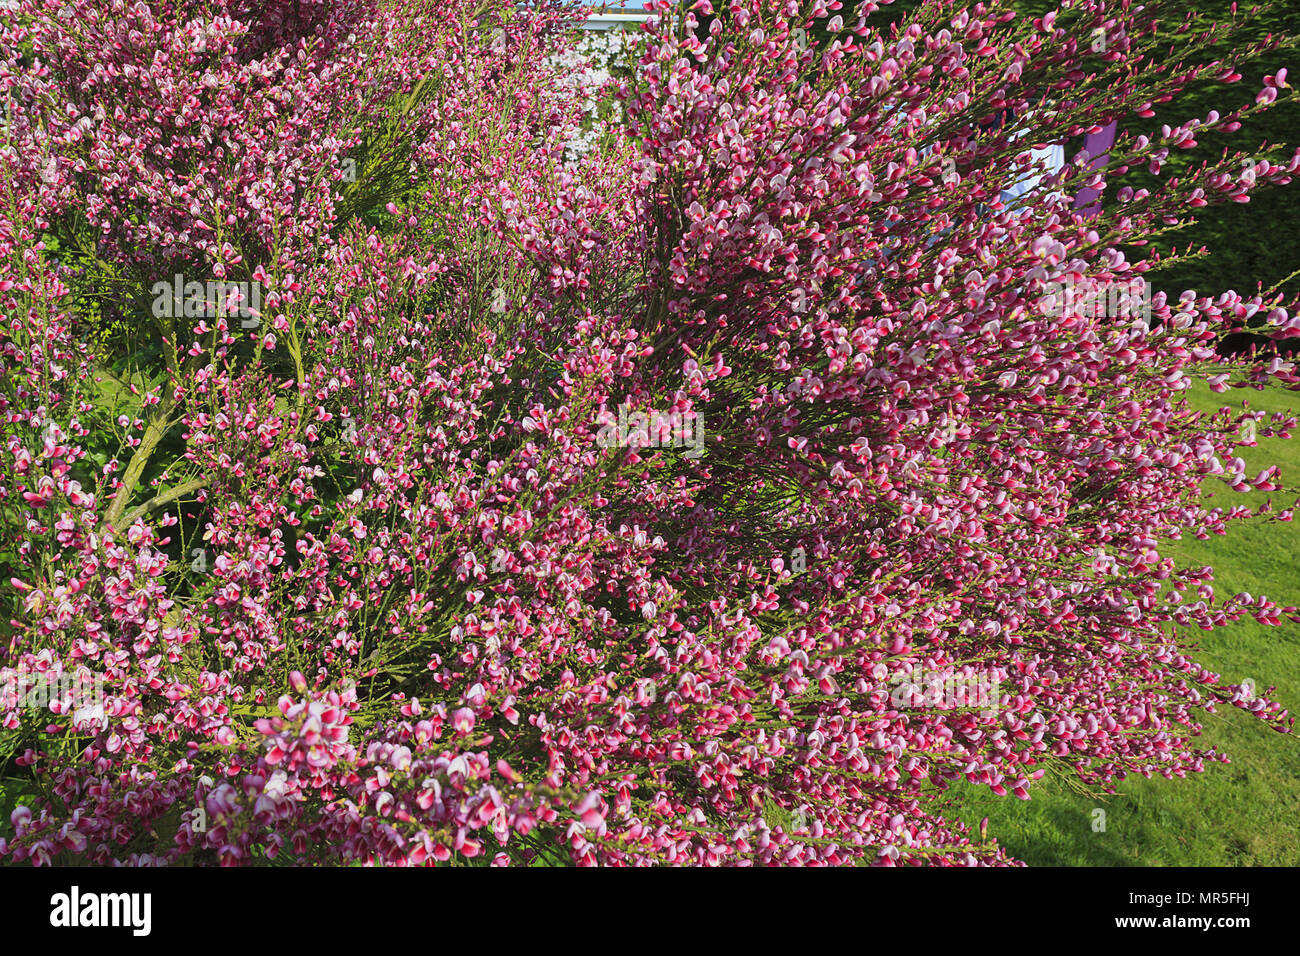 Cytisus (Broom) in bloom - Stock Image